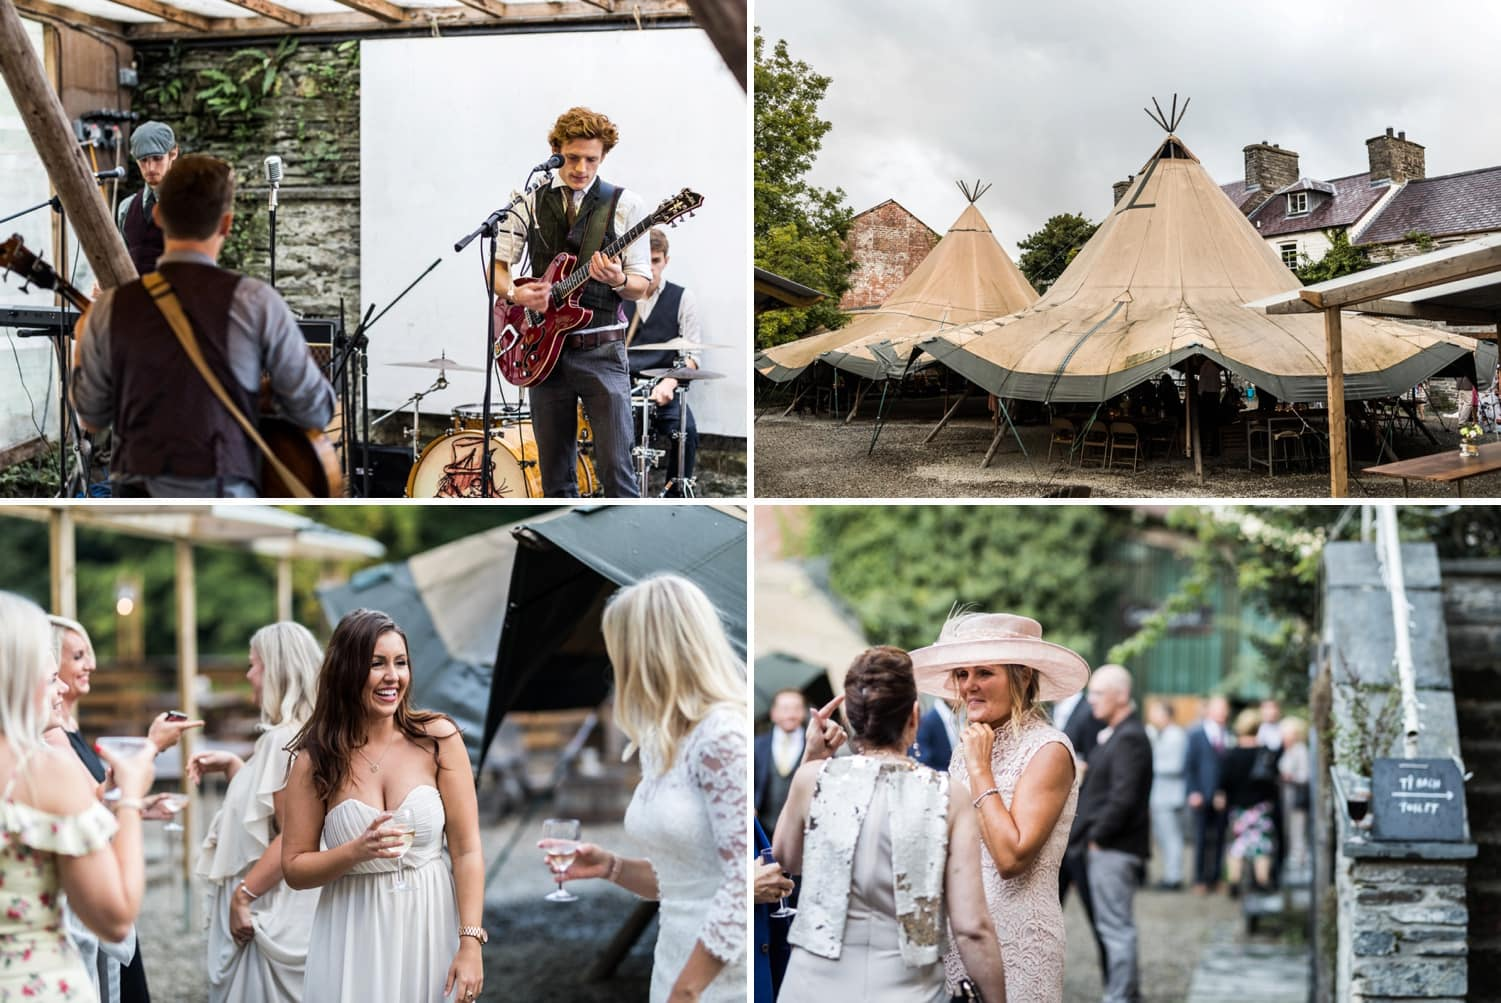 Wedding reception at Pizza Tipi in Cardigian, Wales